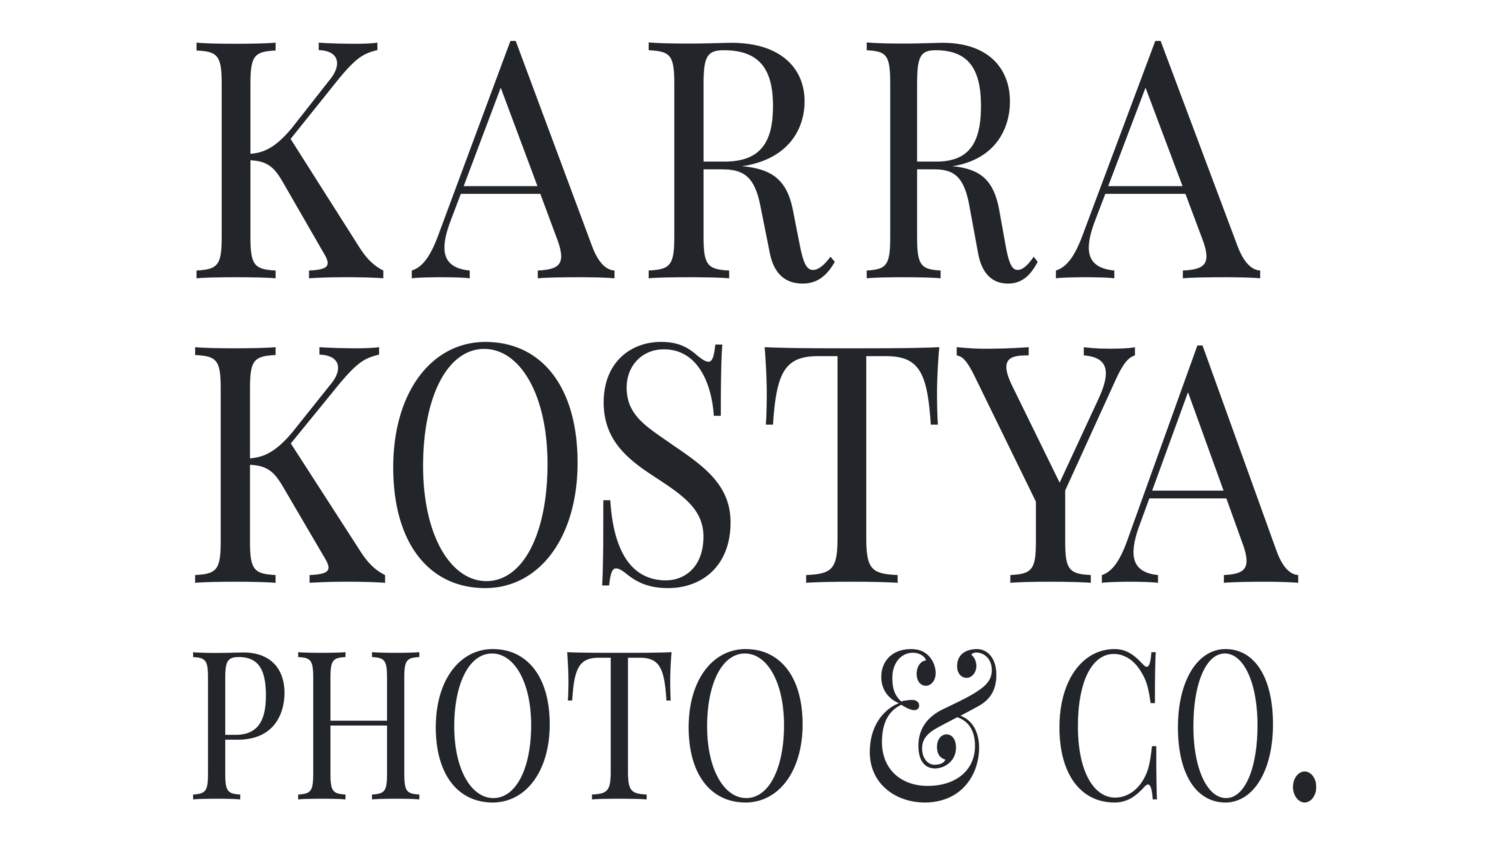 Karra Kostya Photography & Creative Services - Wichita, KS